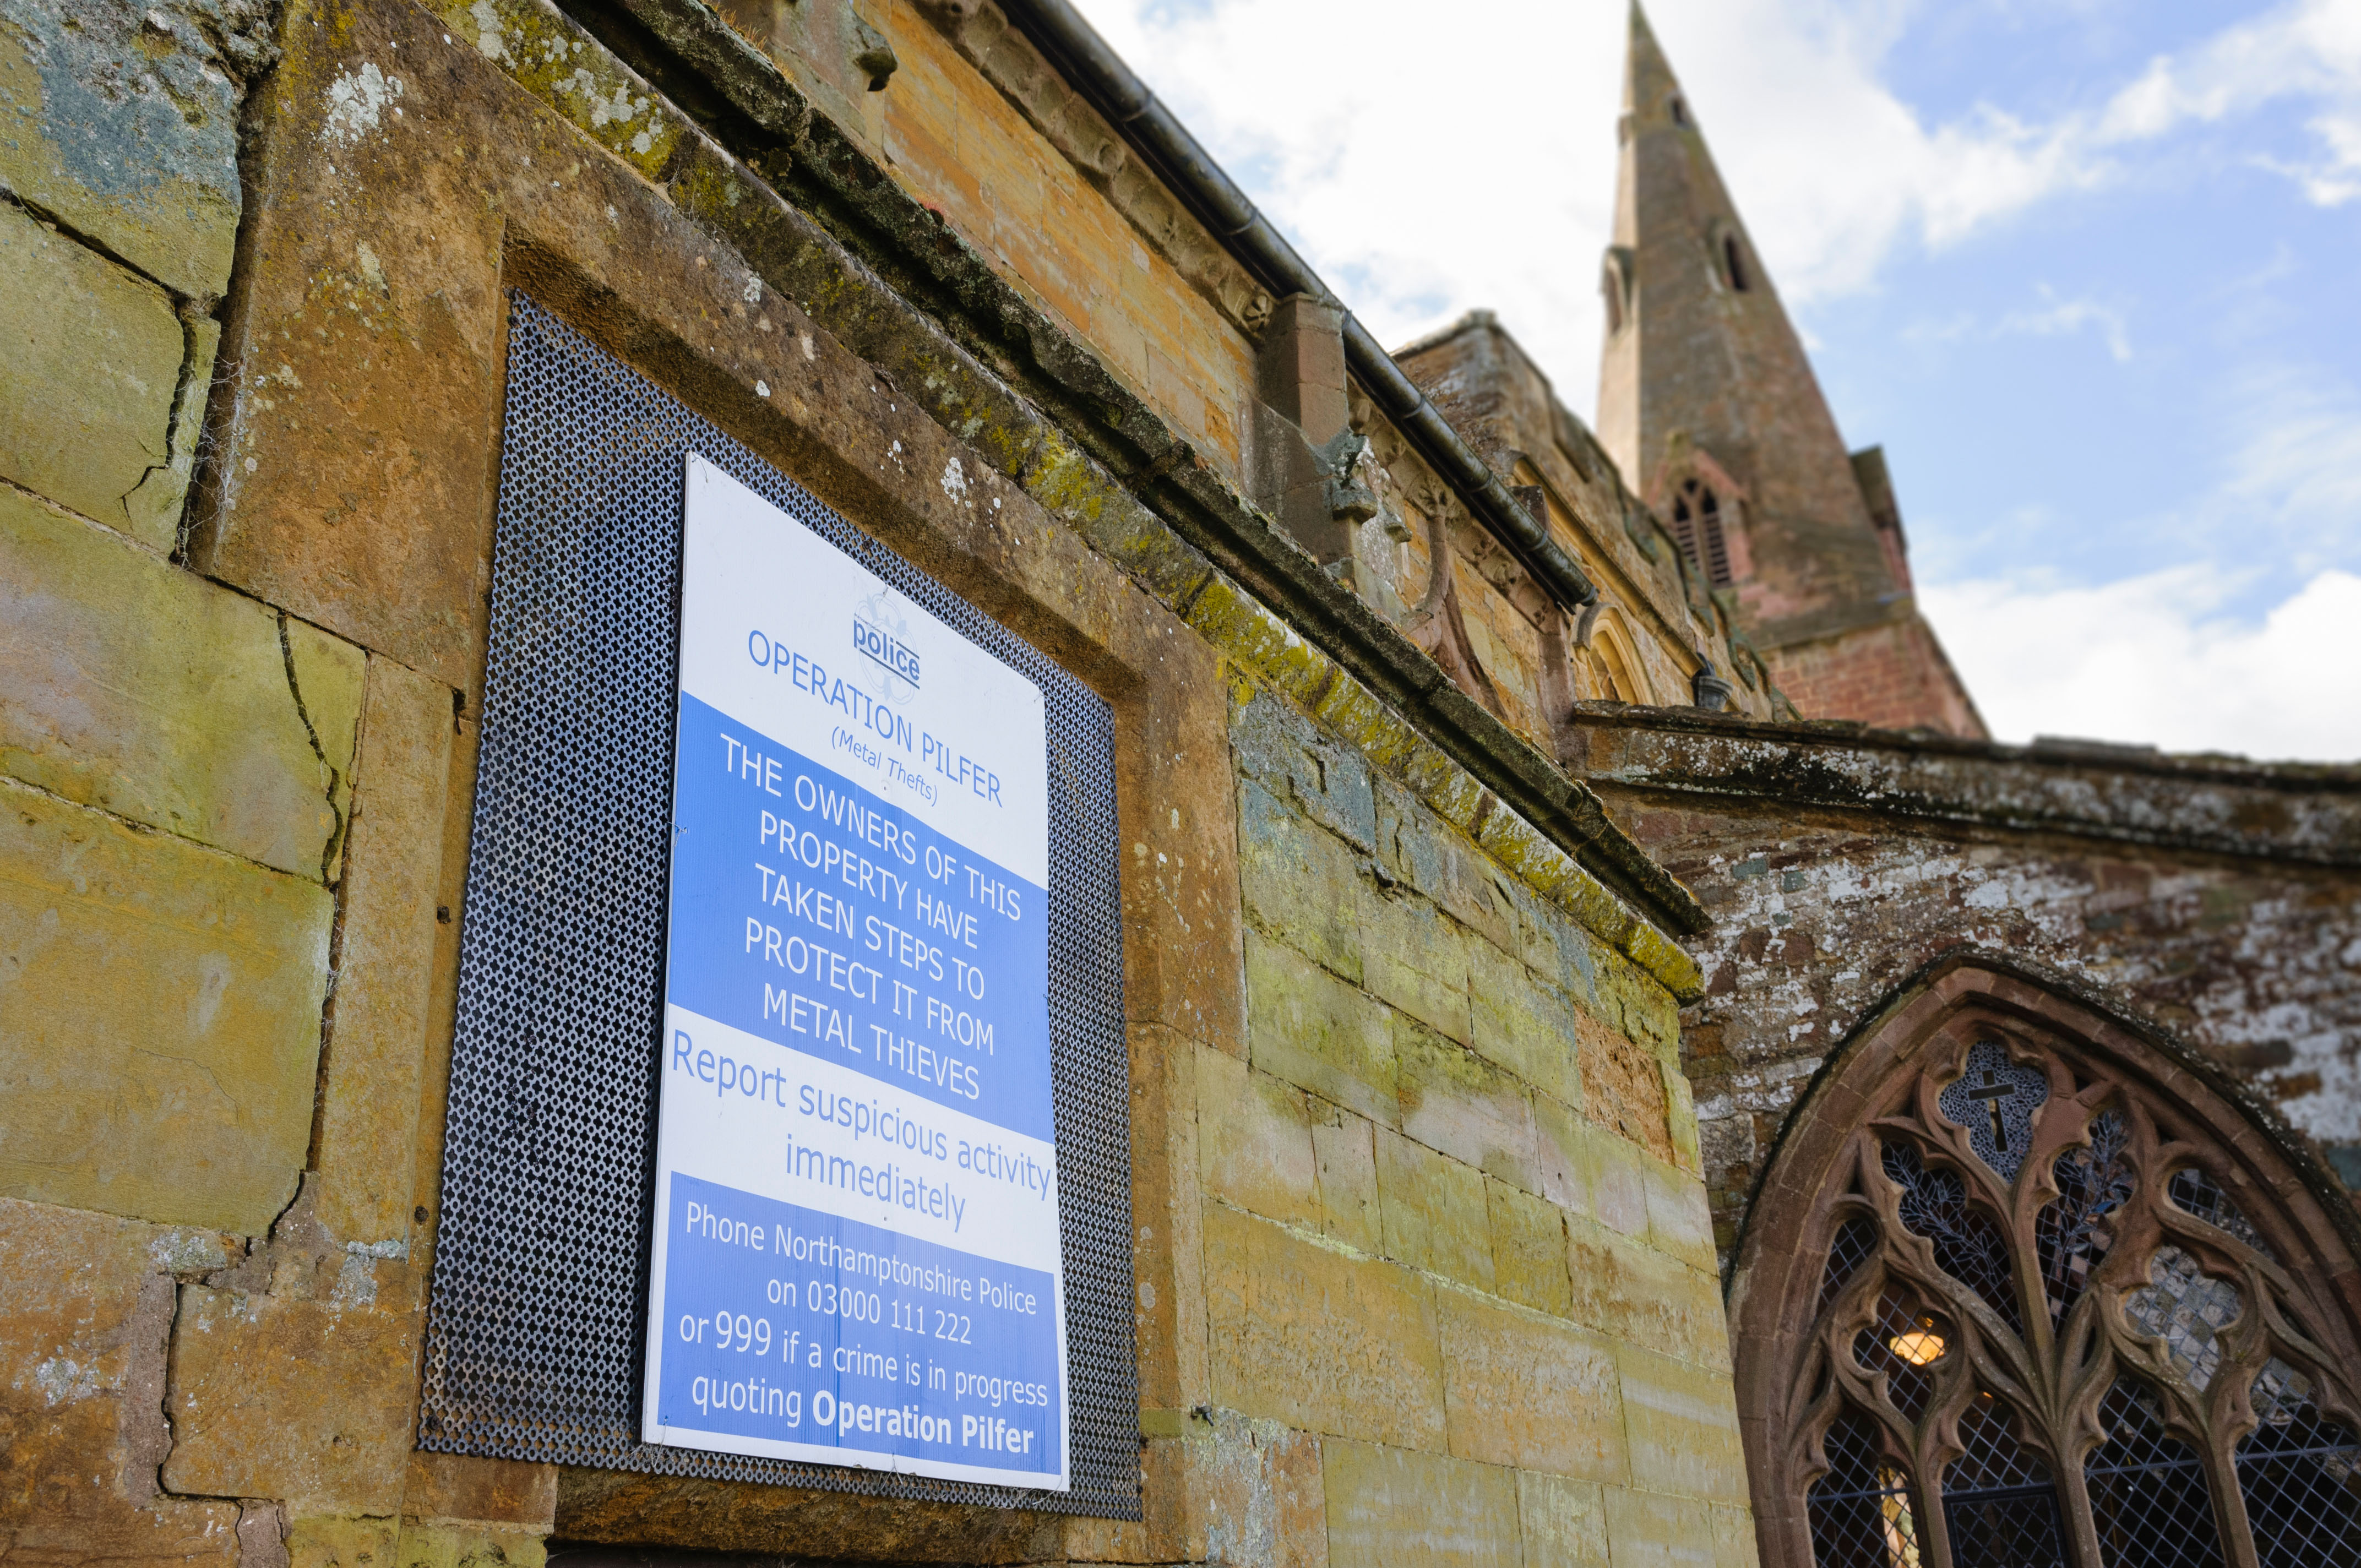 12th century church targeted by thieves who get away with £50,000 of lead from the roof